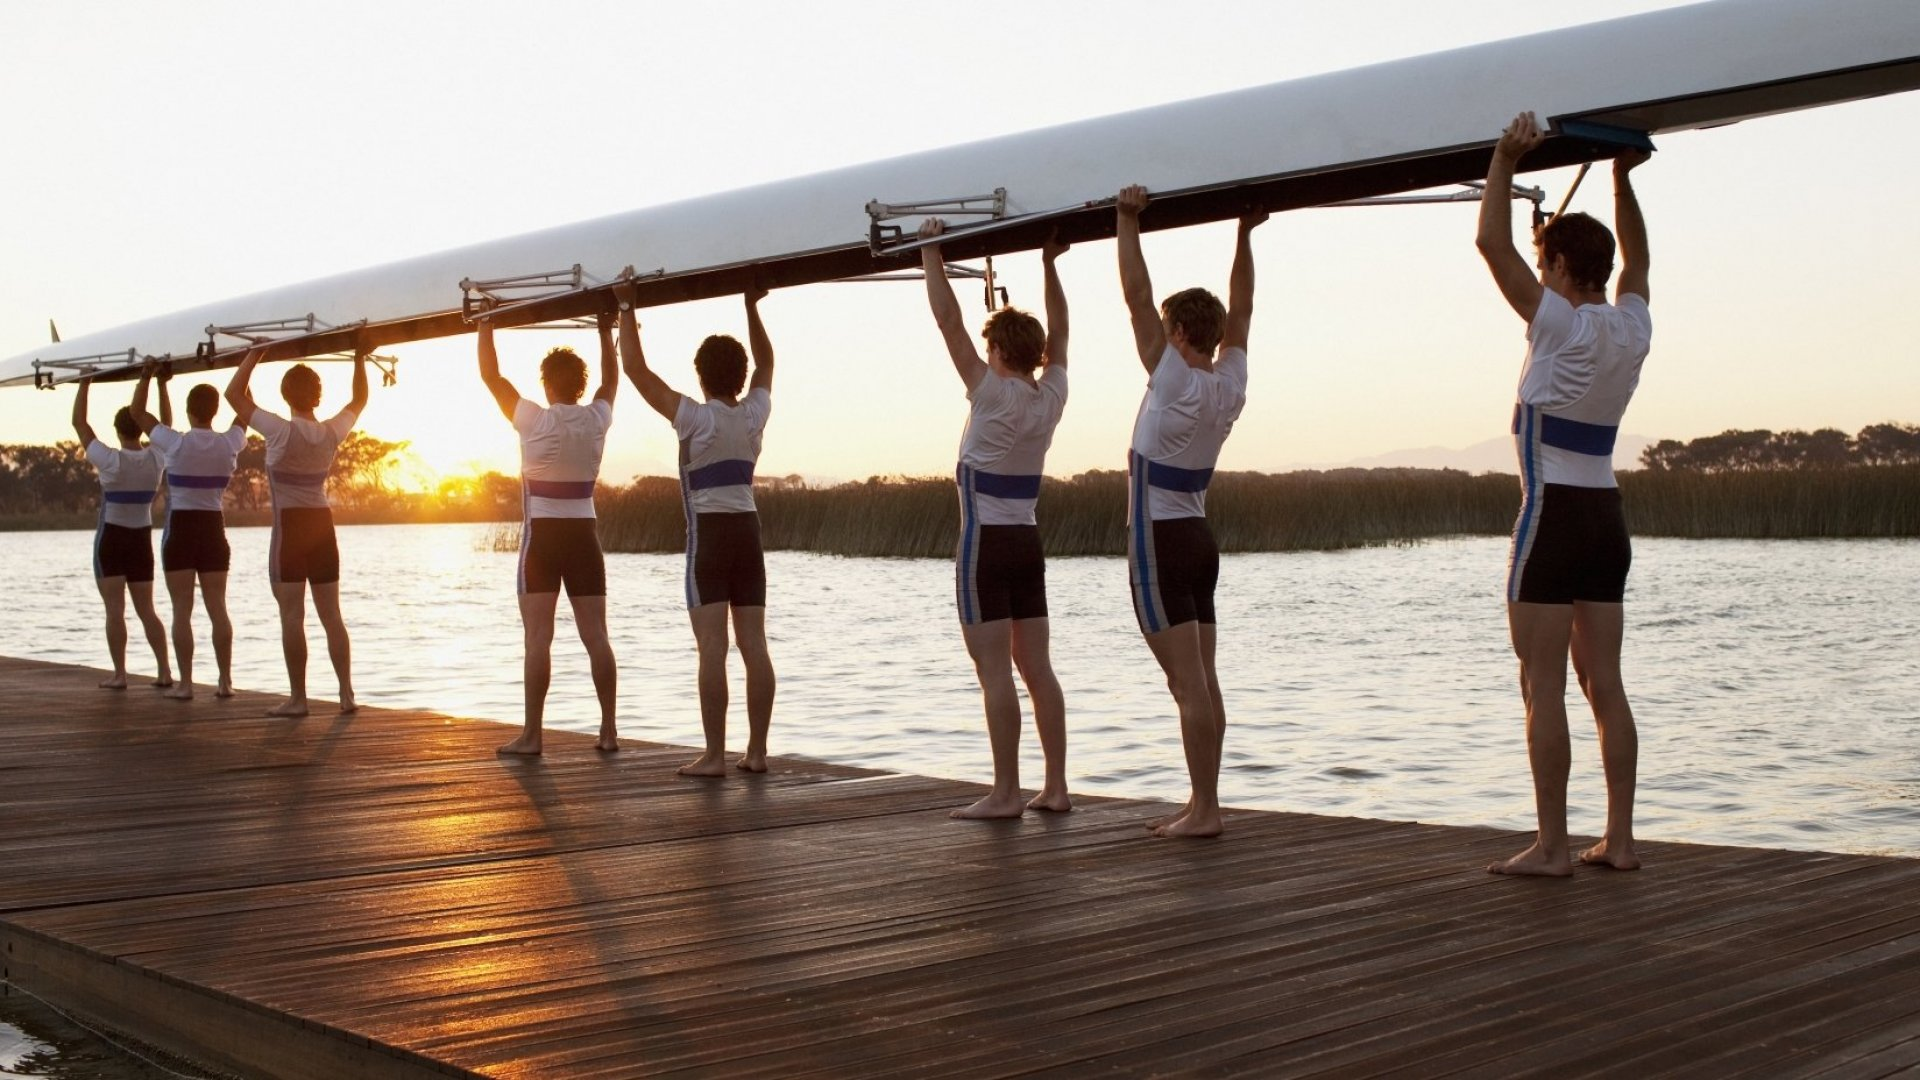 Build Really Strong Teams Using These 5 Uncommonly Powerful Secrets